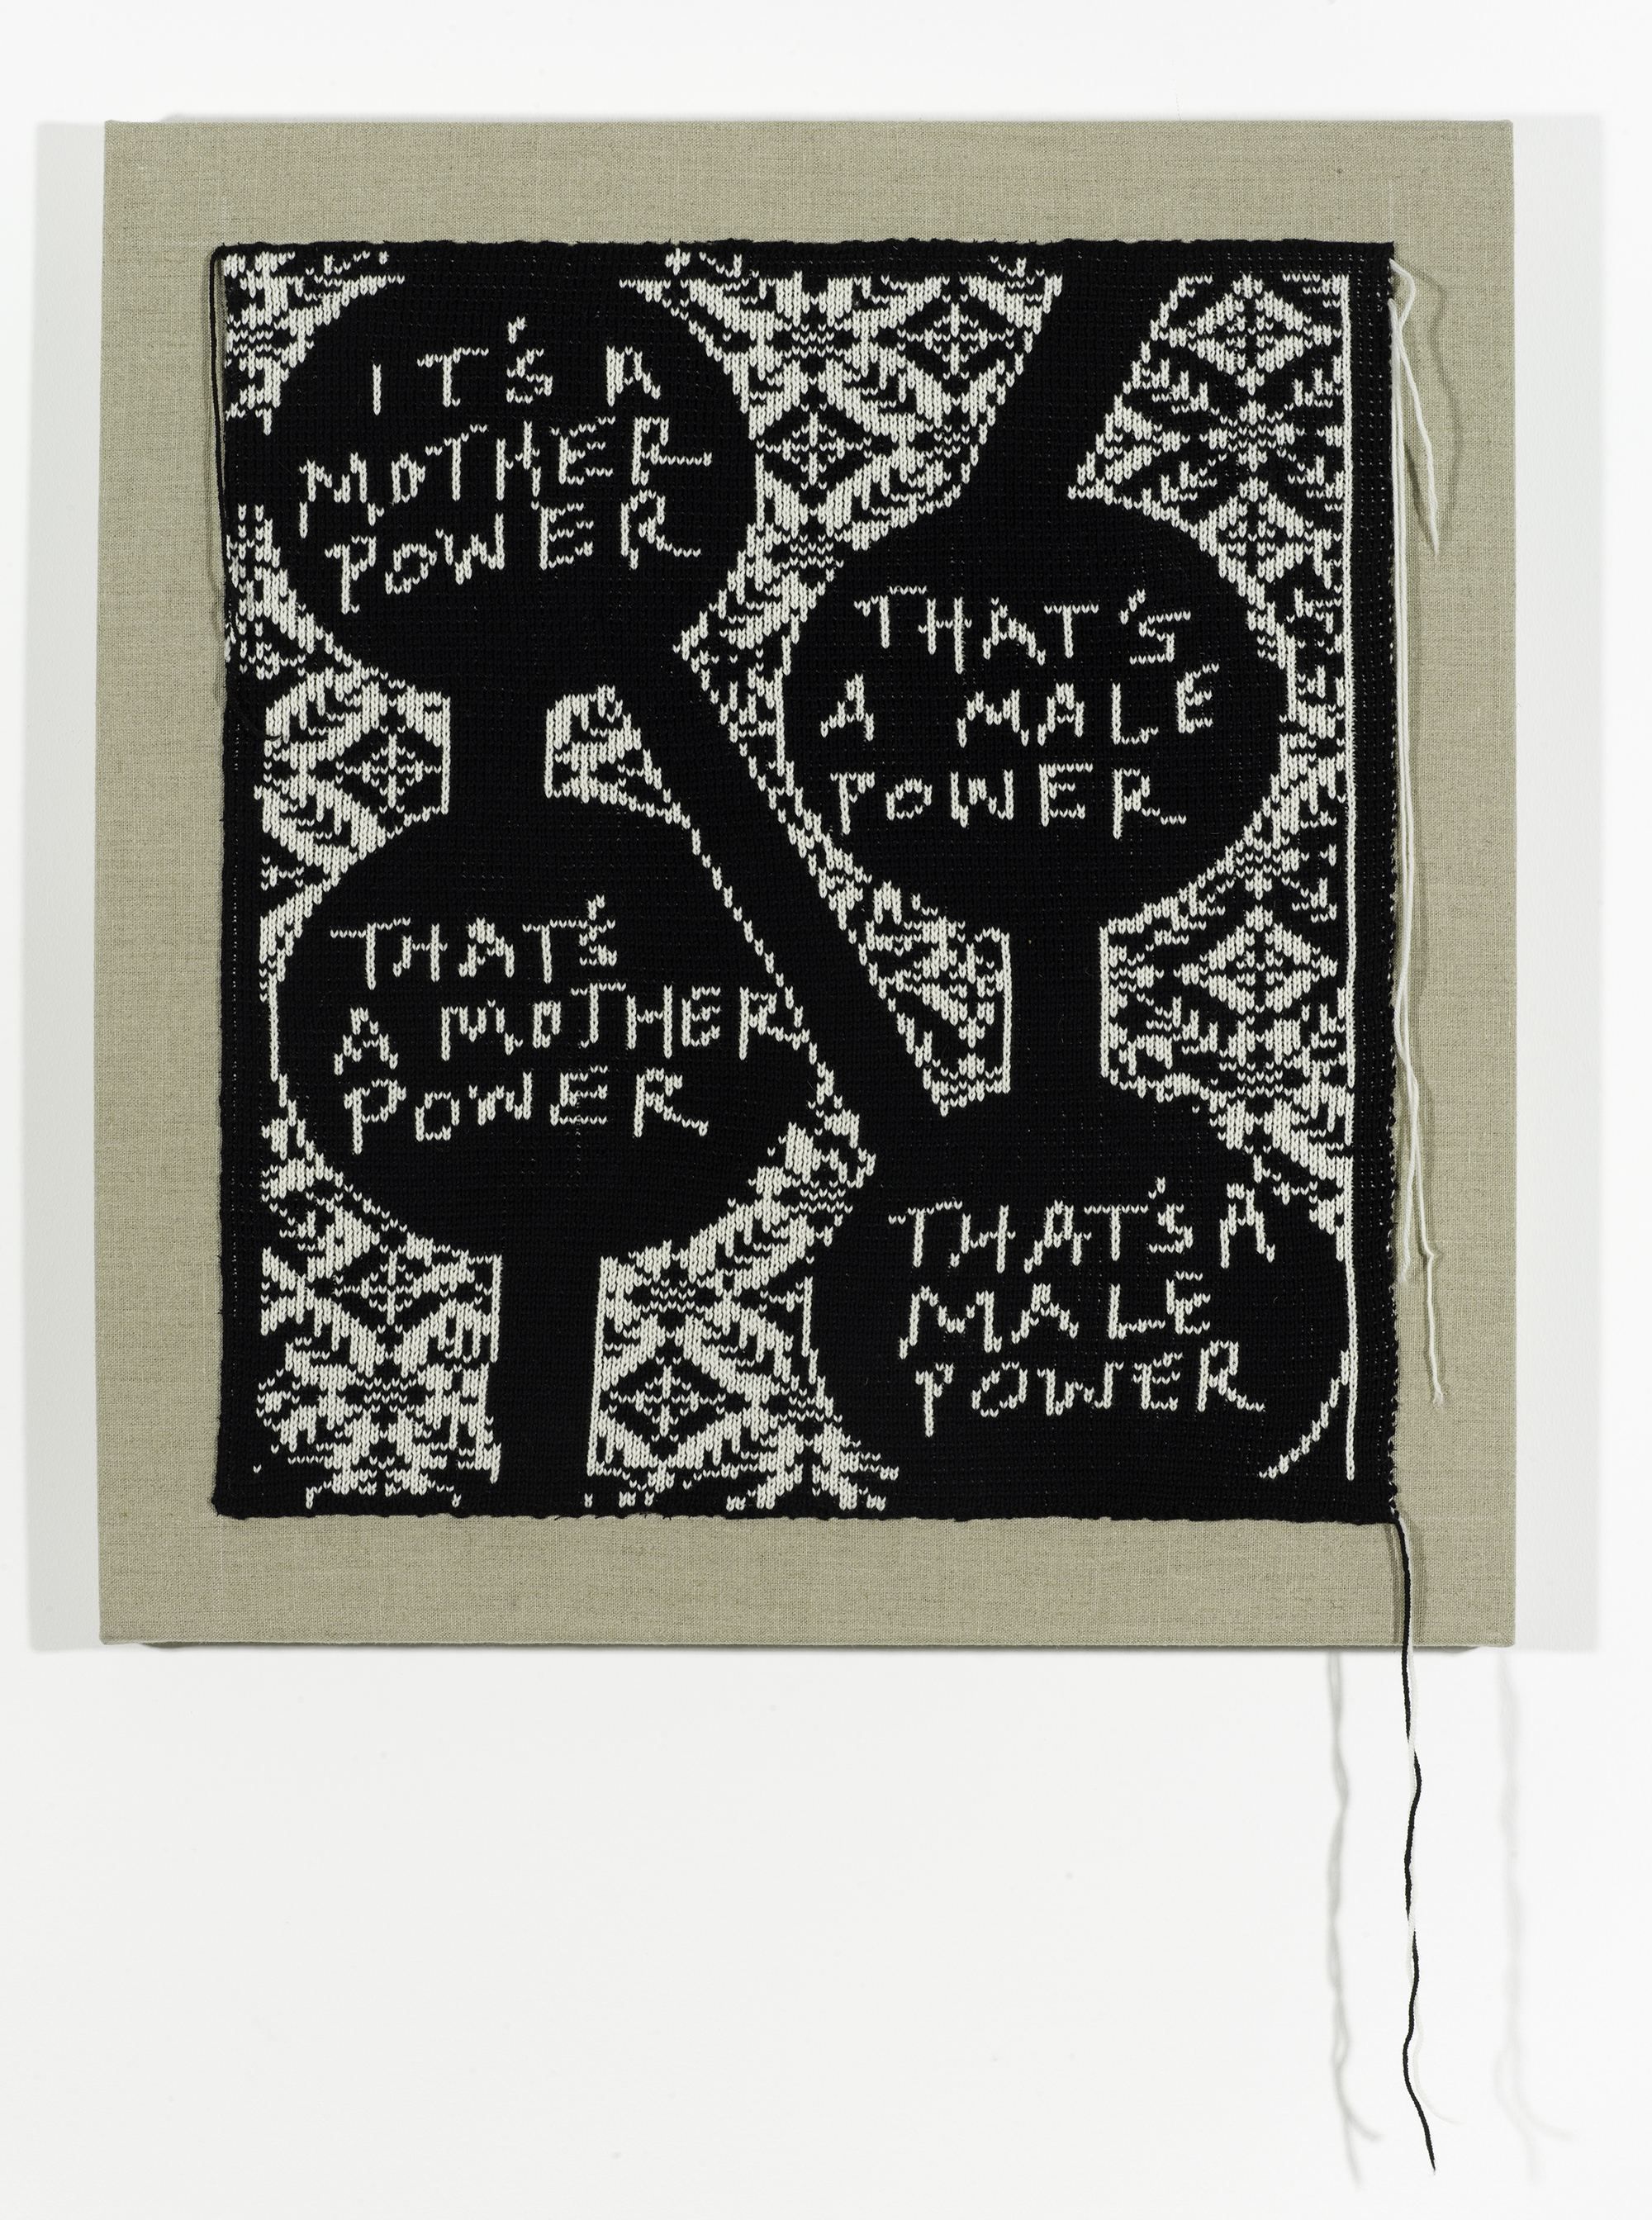 Mother Power Male Power, 2014